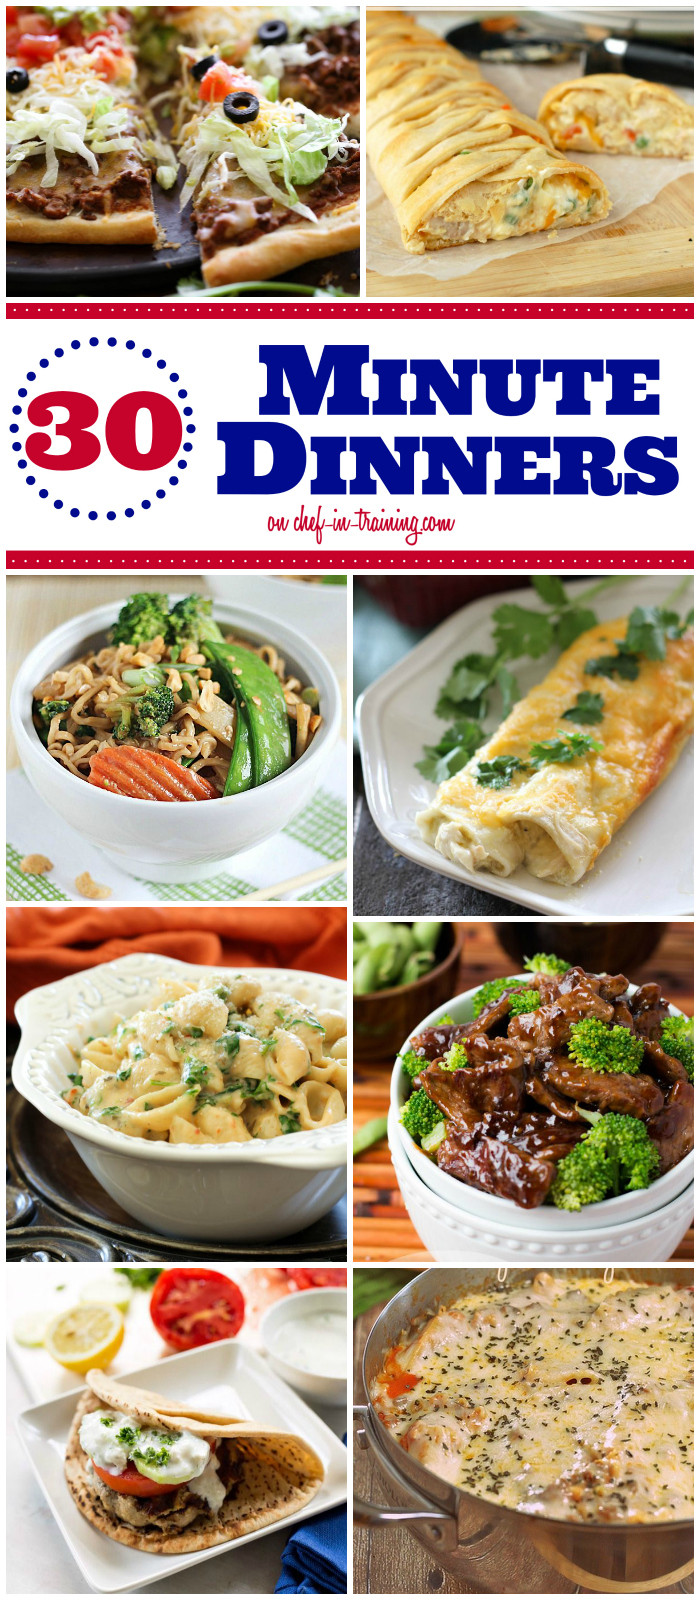 30 Minute Dinners  Top 28 30 Minute Dinner Recipes pineapple chicken 30